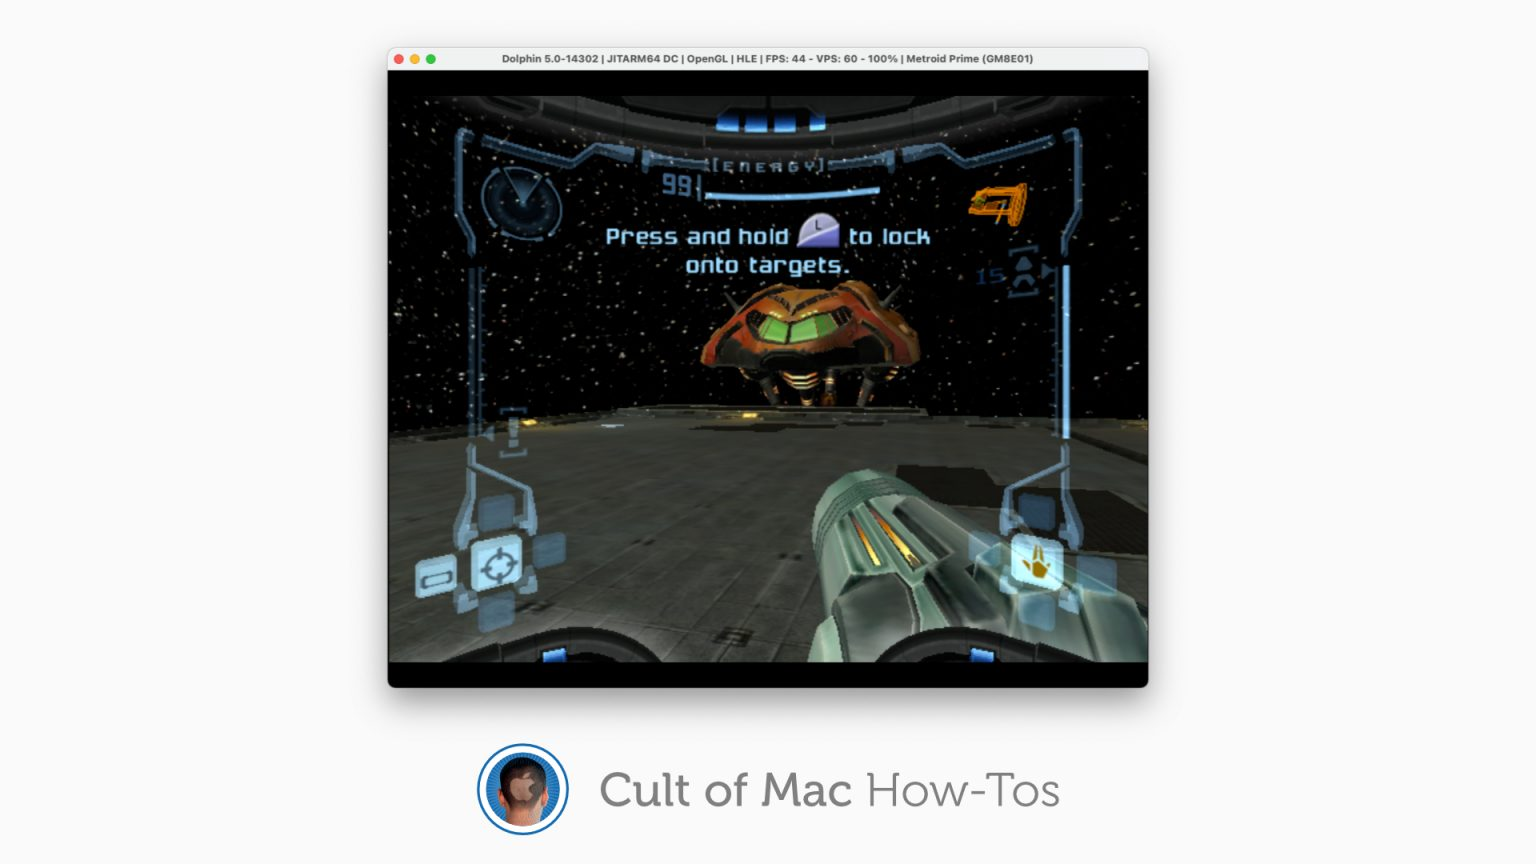 Play GameCube and Wii games on Mac